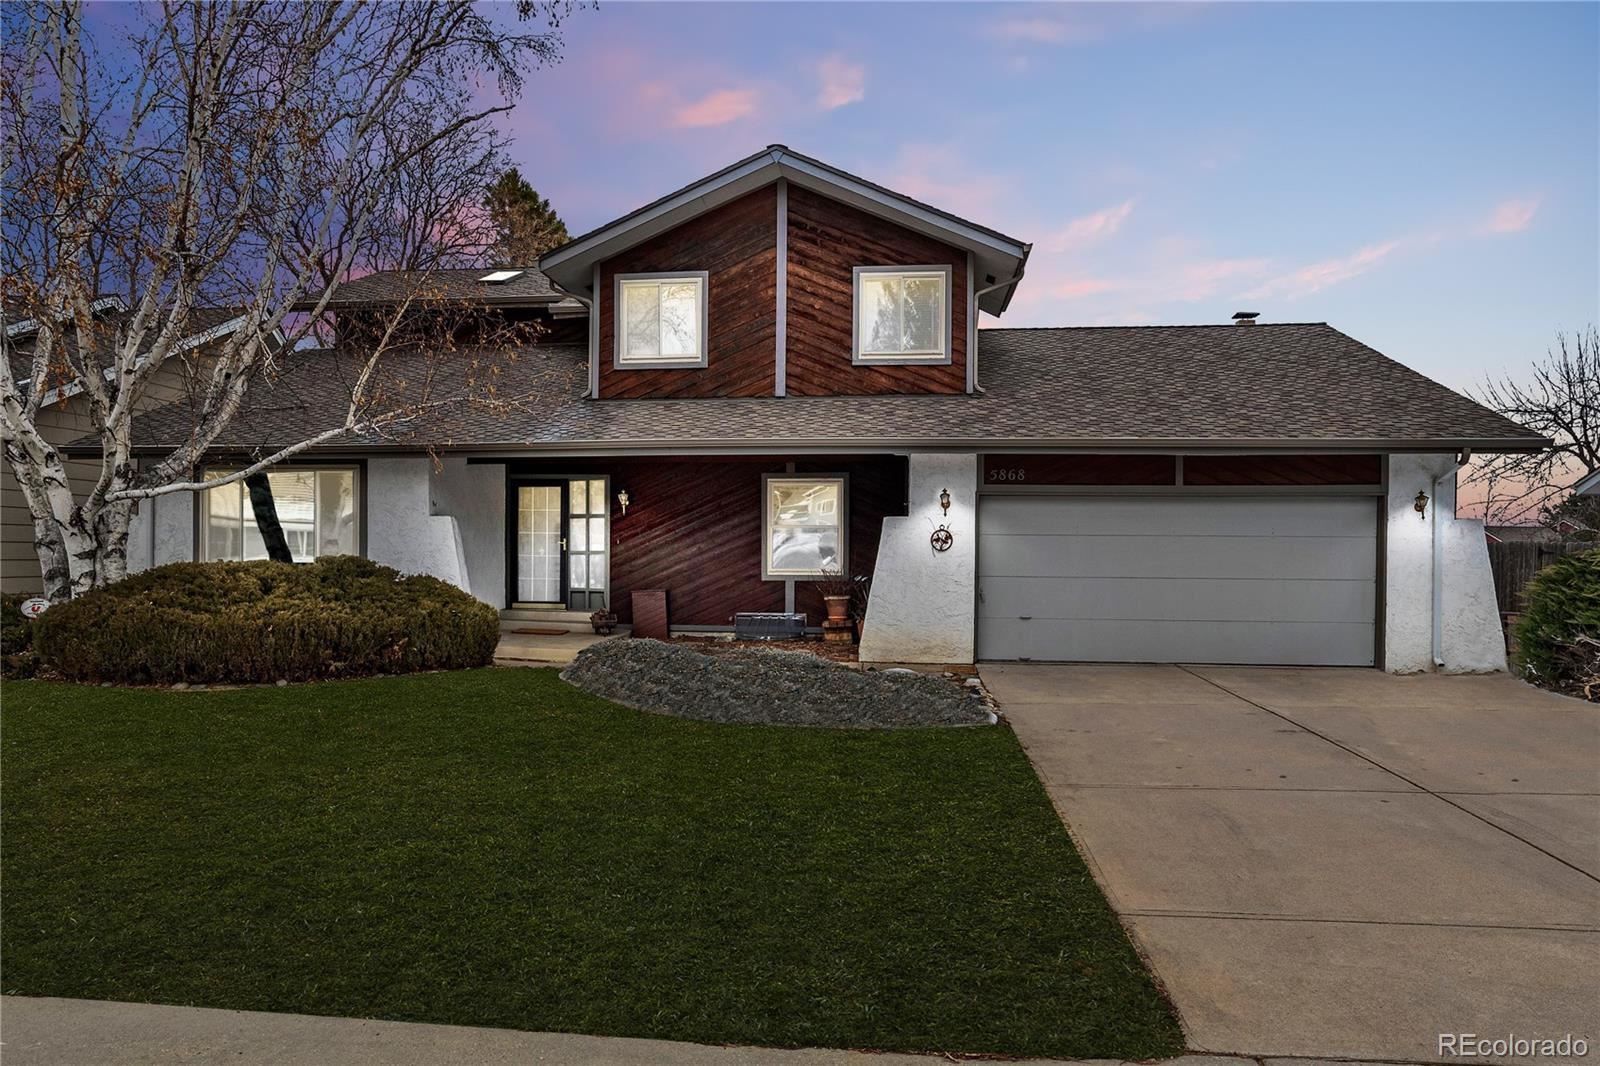 5868 S Kenton Street, Englewood, CO 80111 - #: 8533445